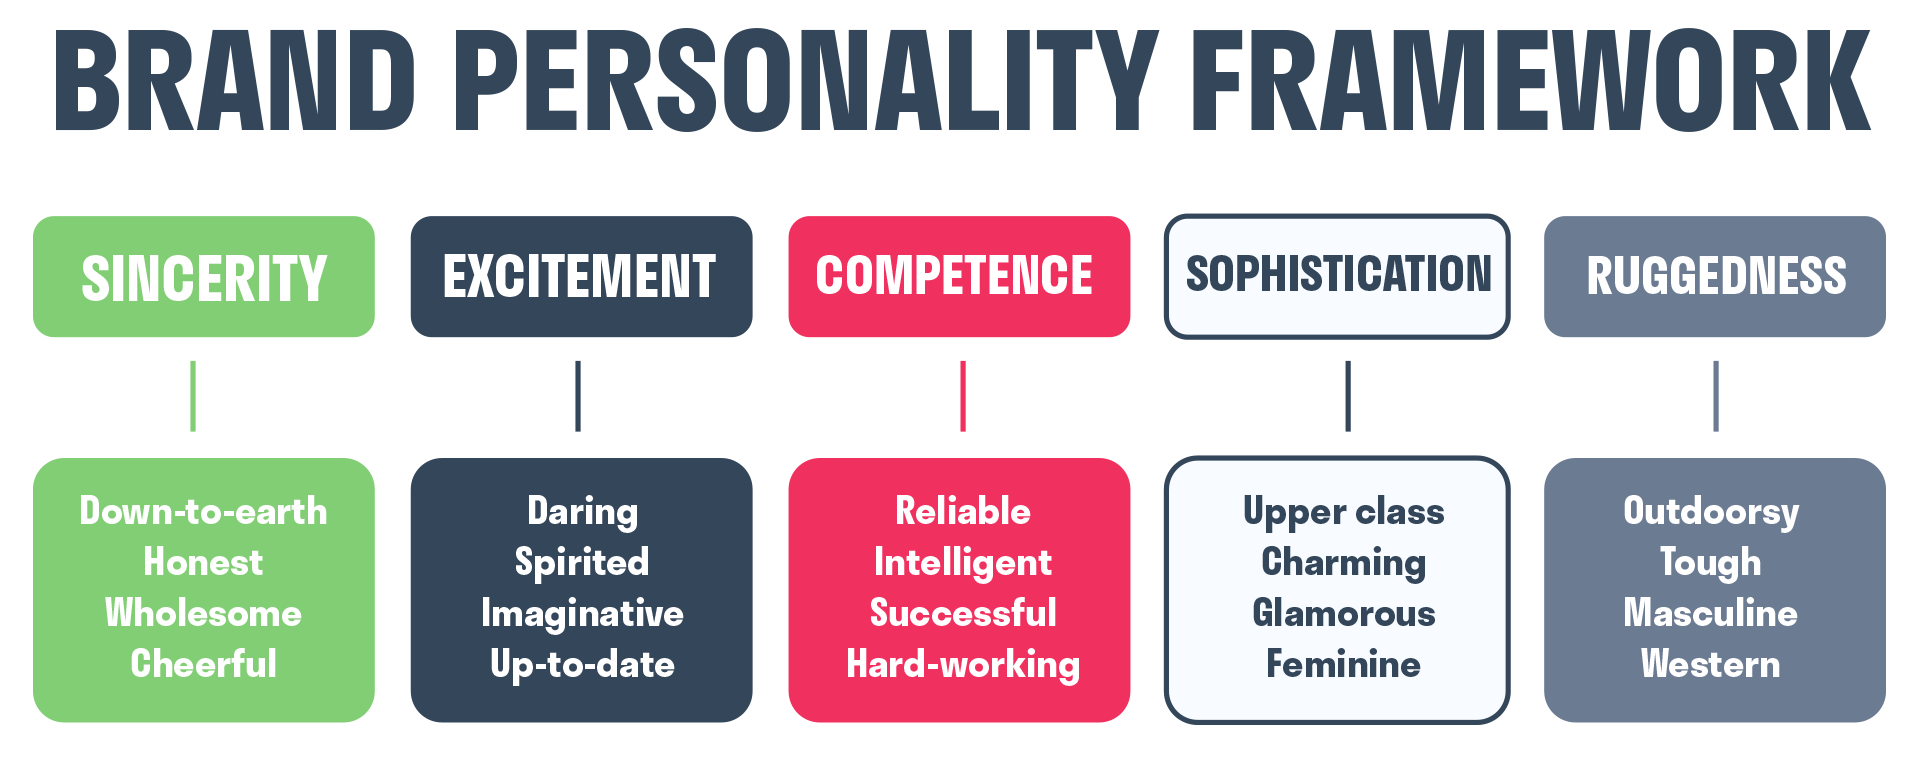 brand personality framework by jennifer aaker includes: Sincerity, excitement, competence, sophistication and ruggedness